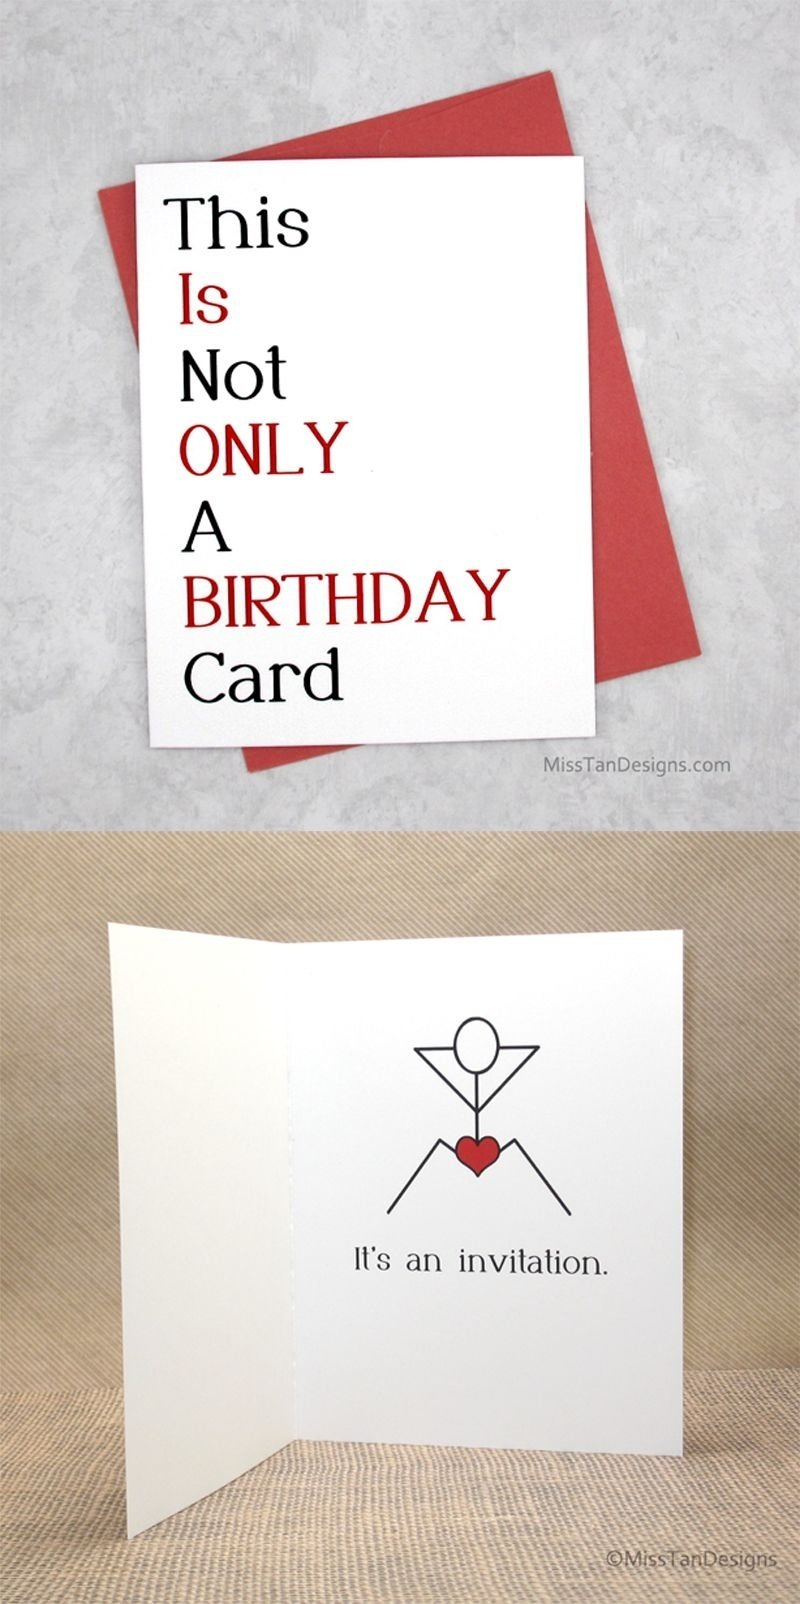 10 Attractive Sexy Gift Ideas For Him Boyfriend Birthday Cards Not Only Funny Card